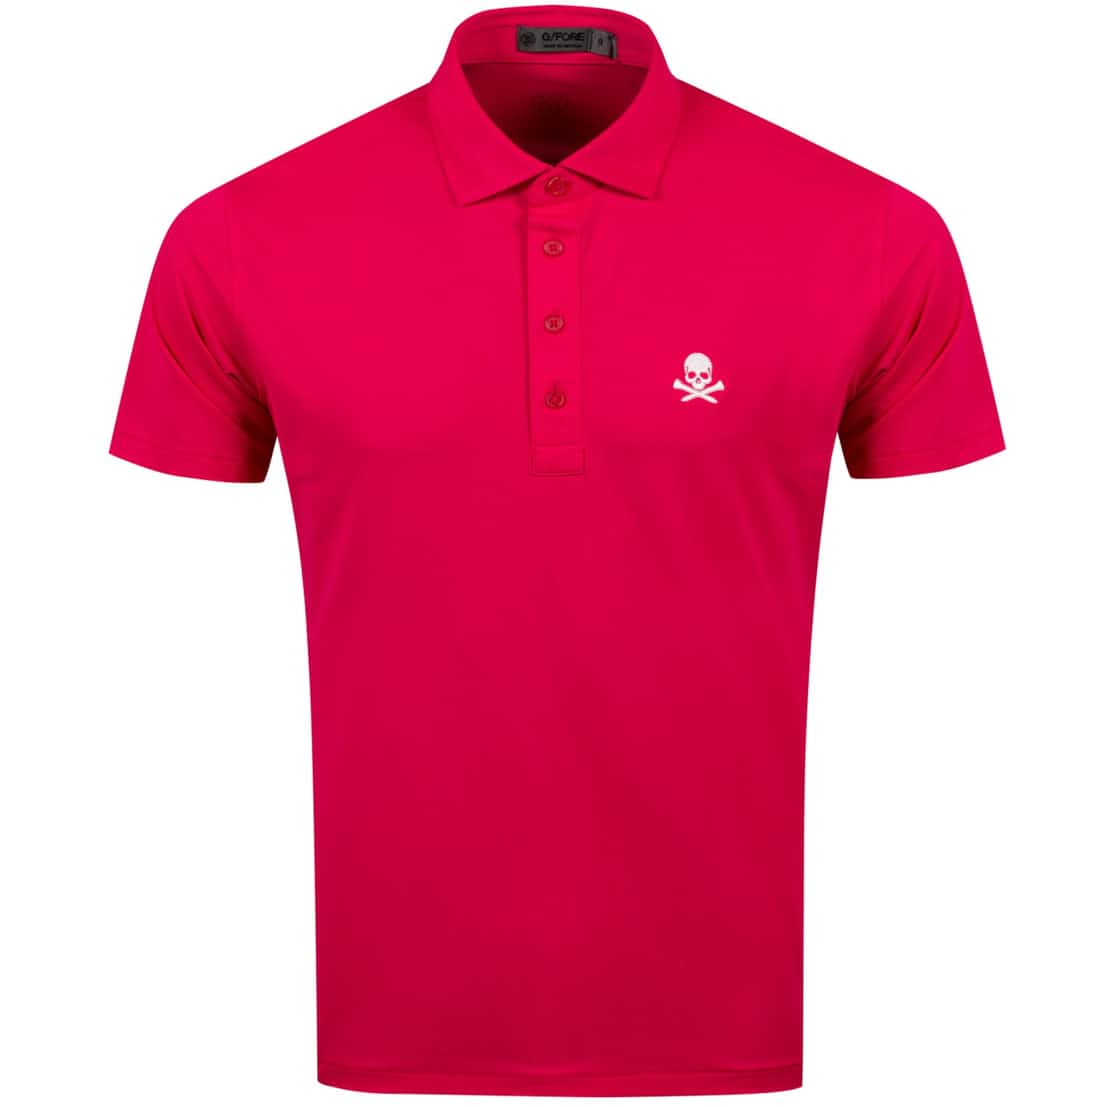 x TRENDYGOLF Skull Pique Polo Bright Rose - AW20